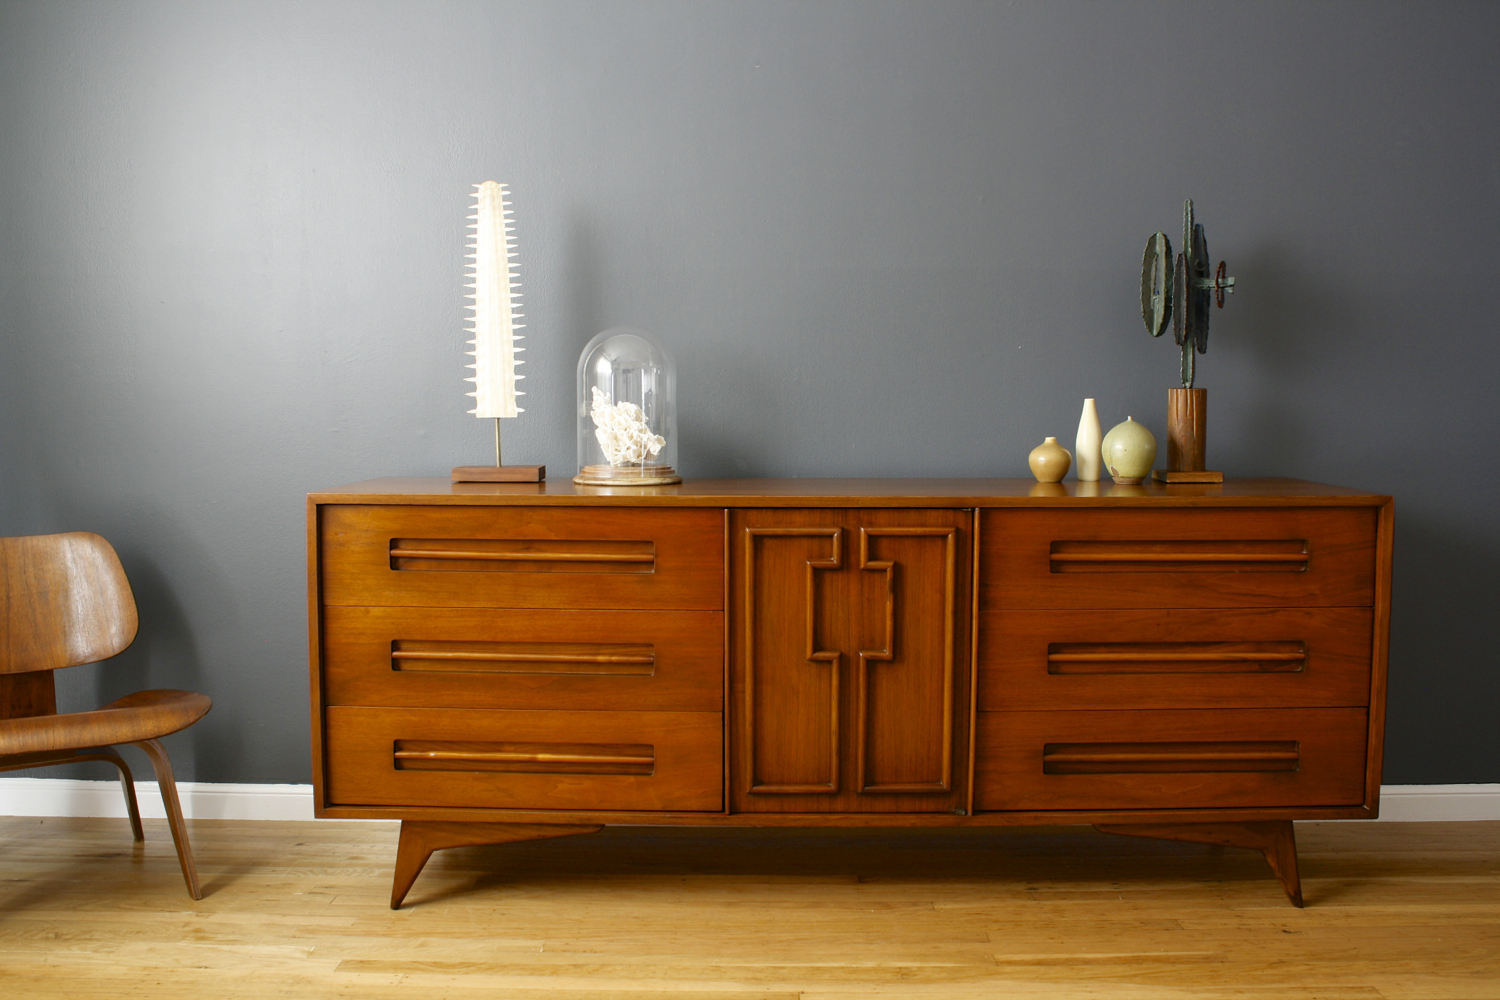 Copy of Mid-Century Modern Dresser by Genova